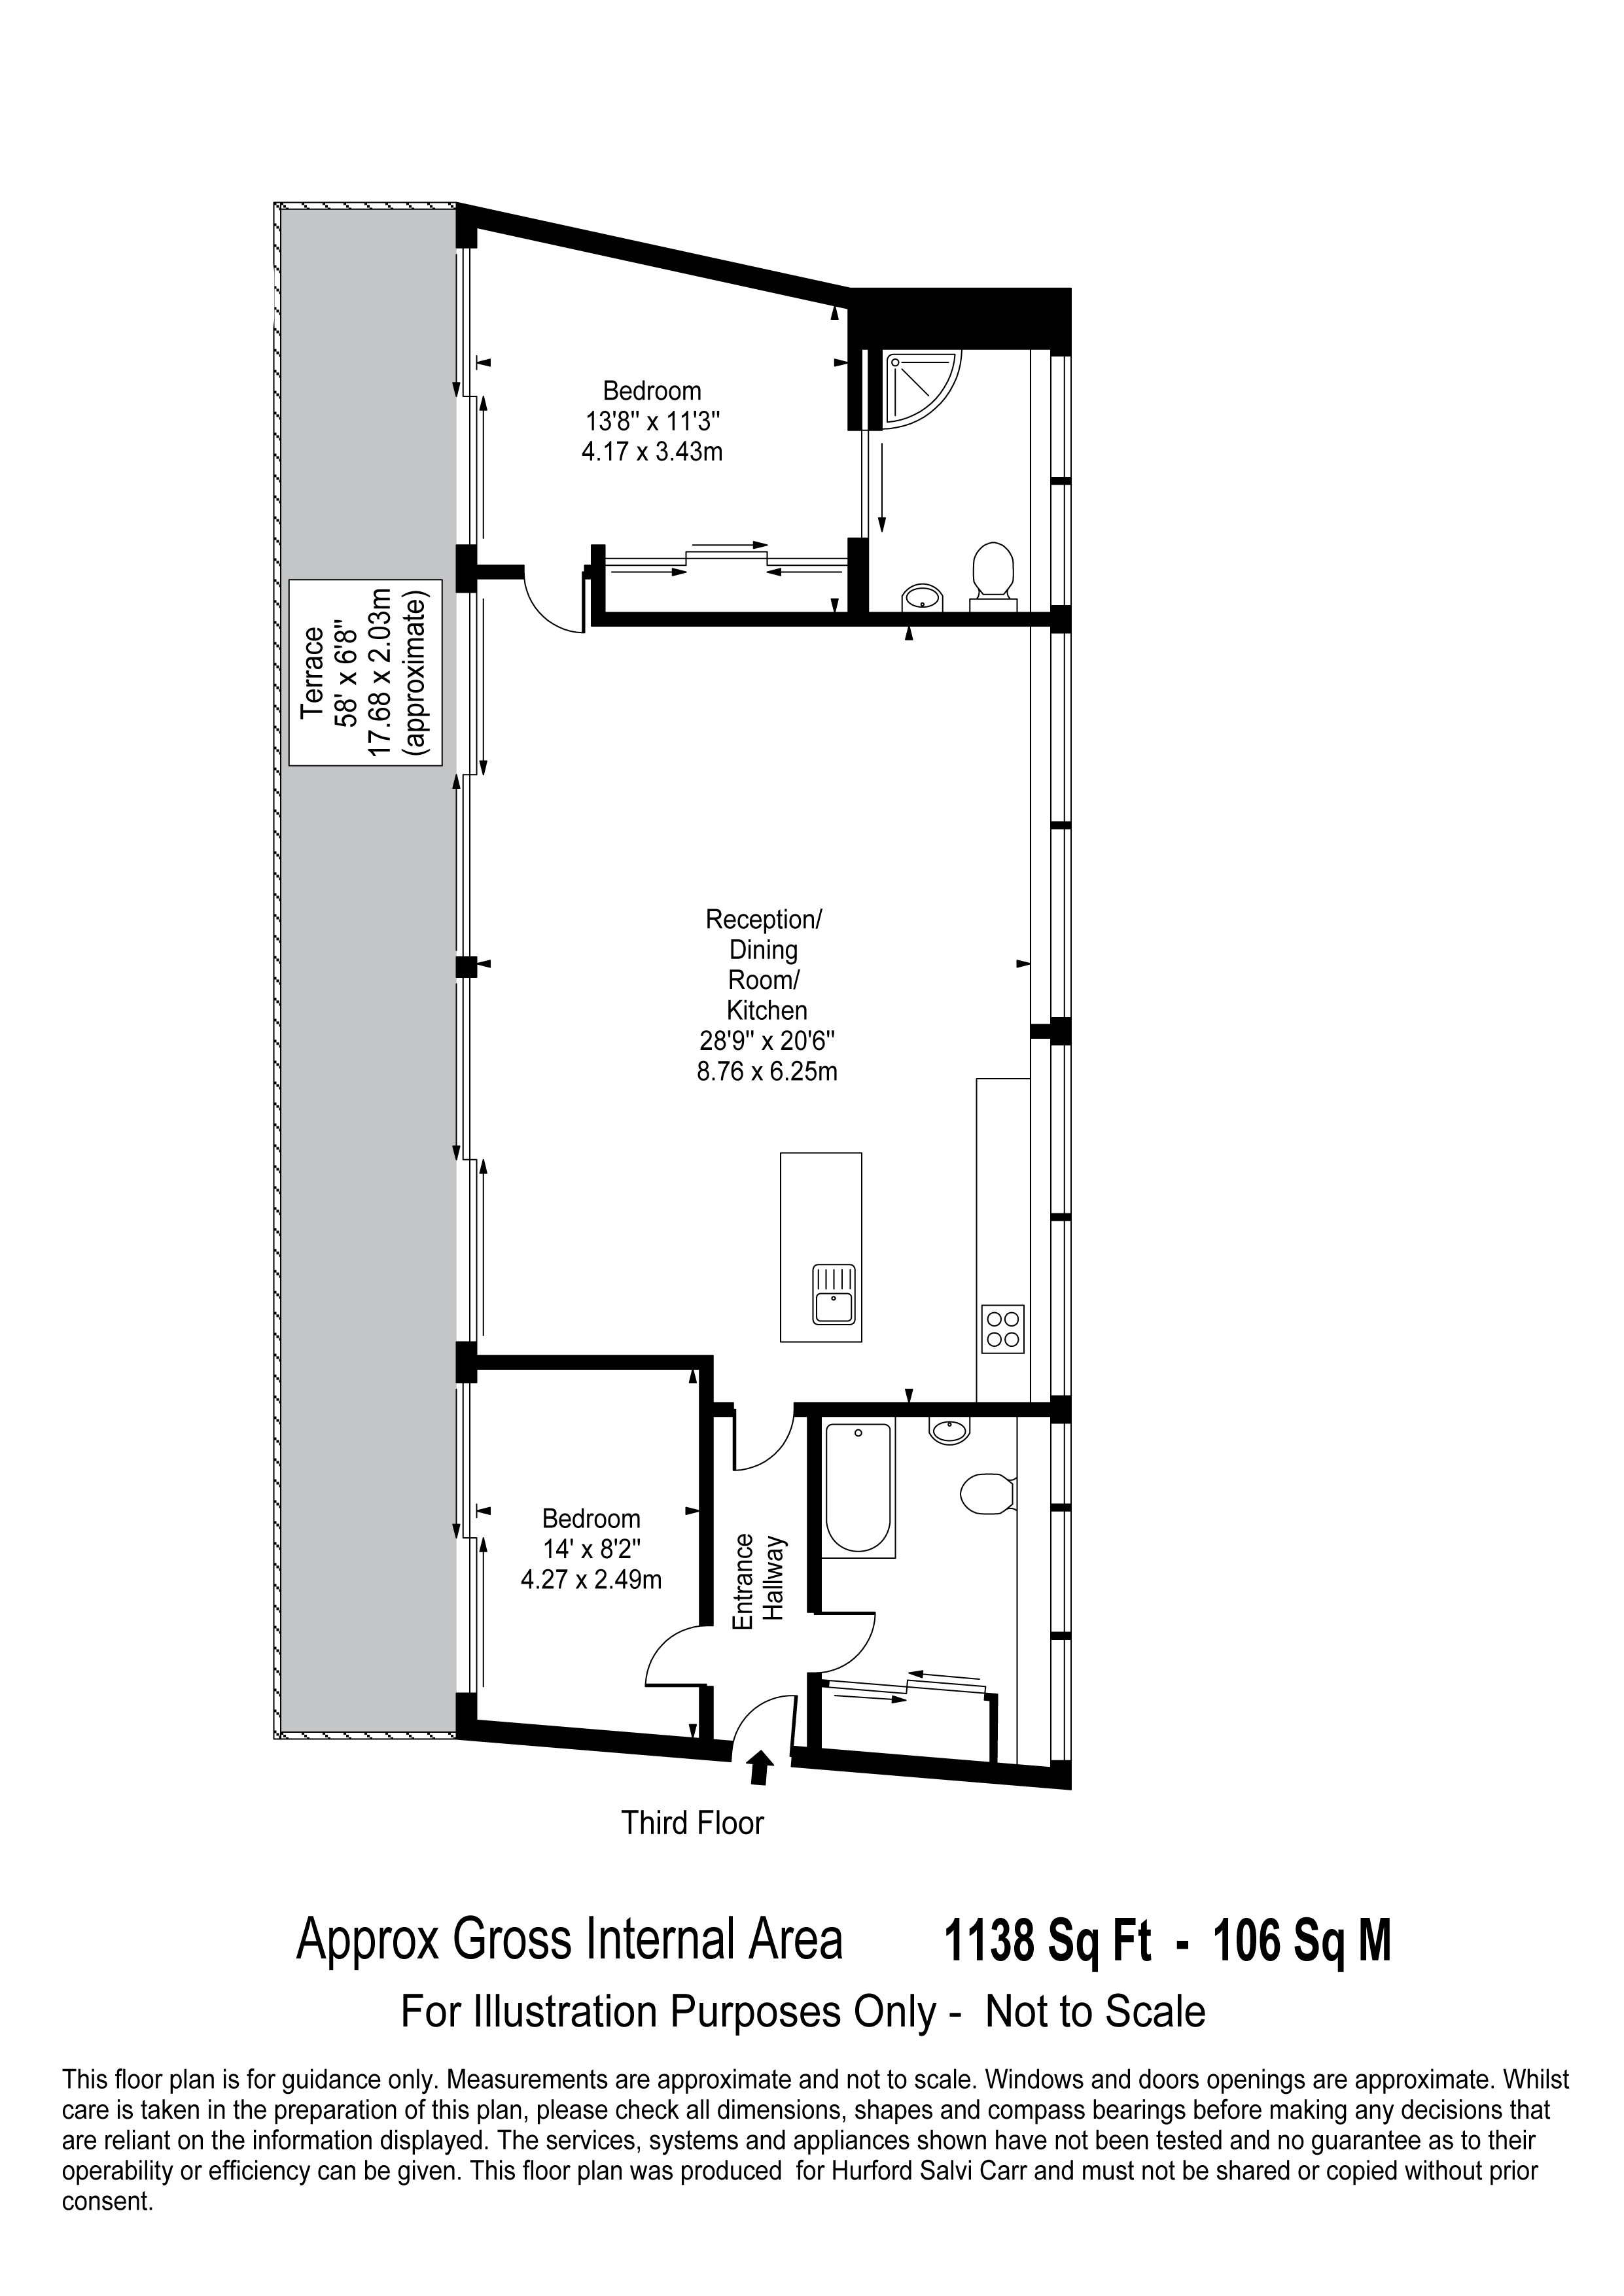 St John Street, London, EC1V floorplan